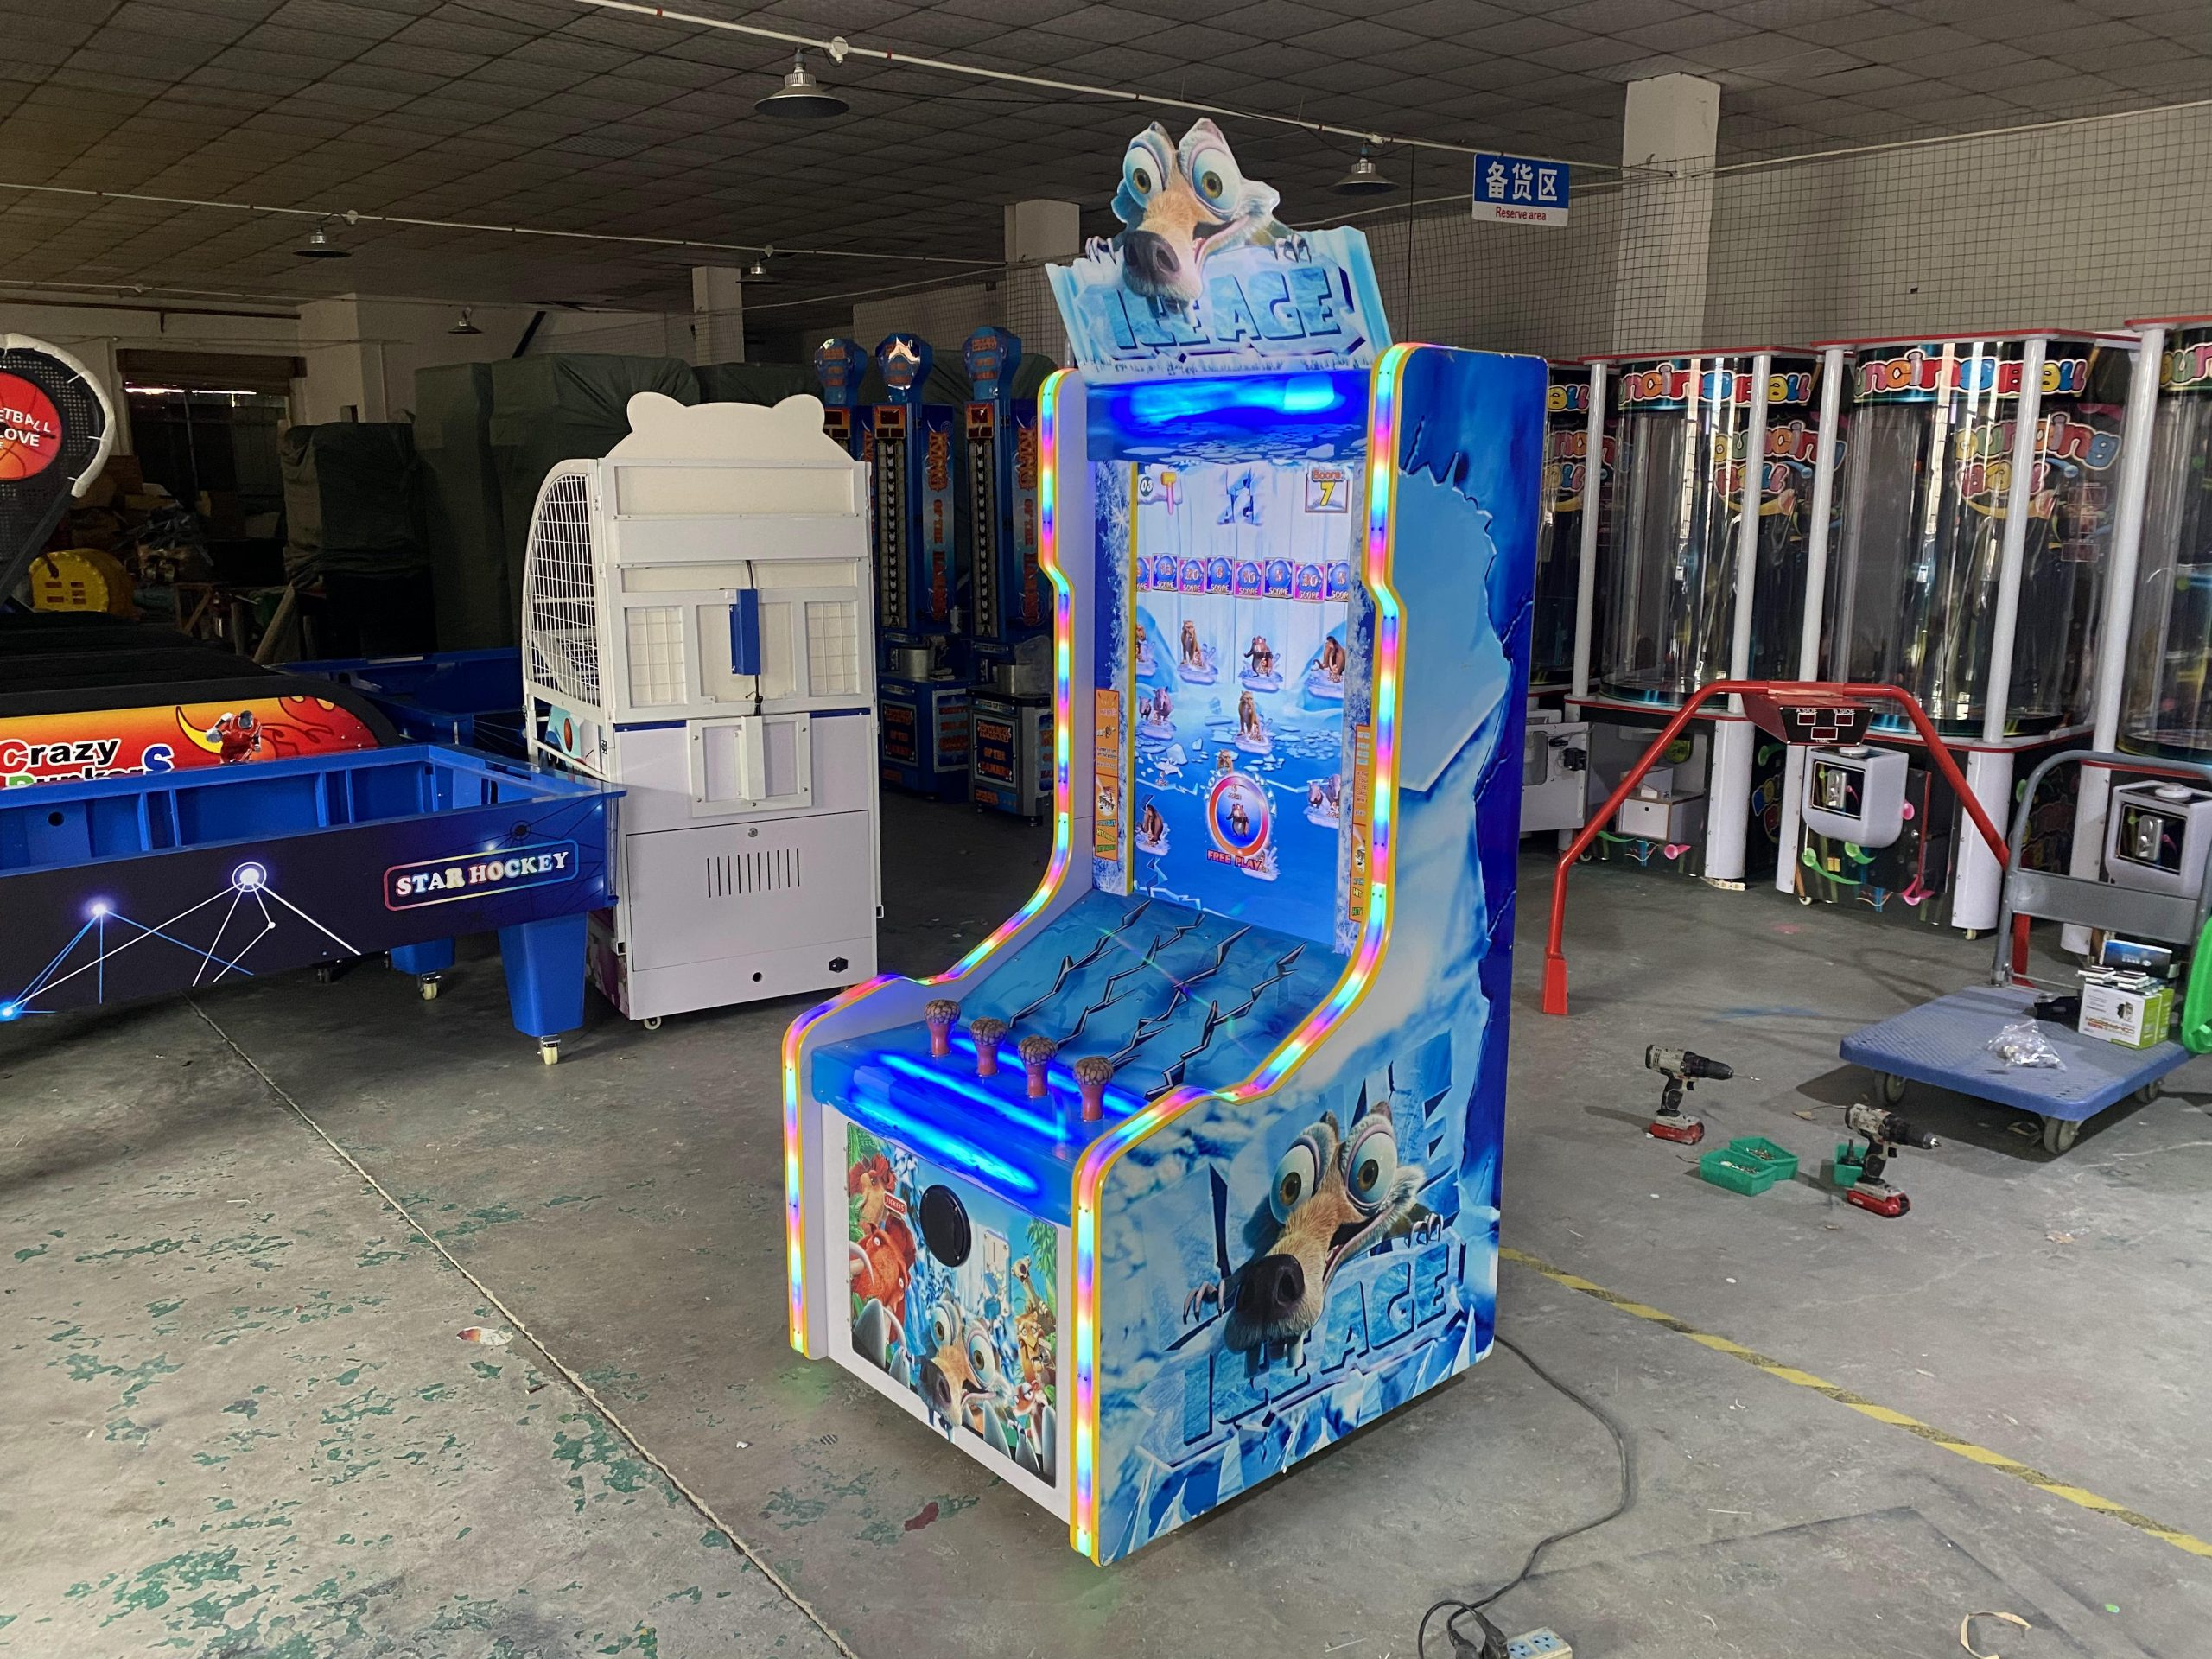 Ice Age Redemption Tcket Lottery Video Arcade Game Machine